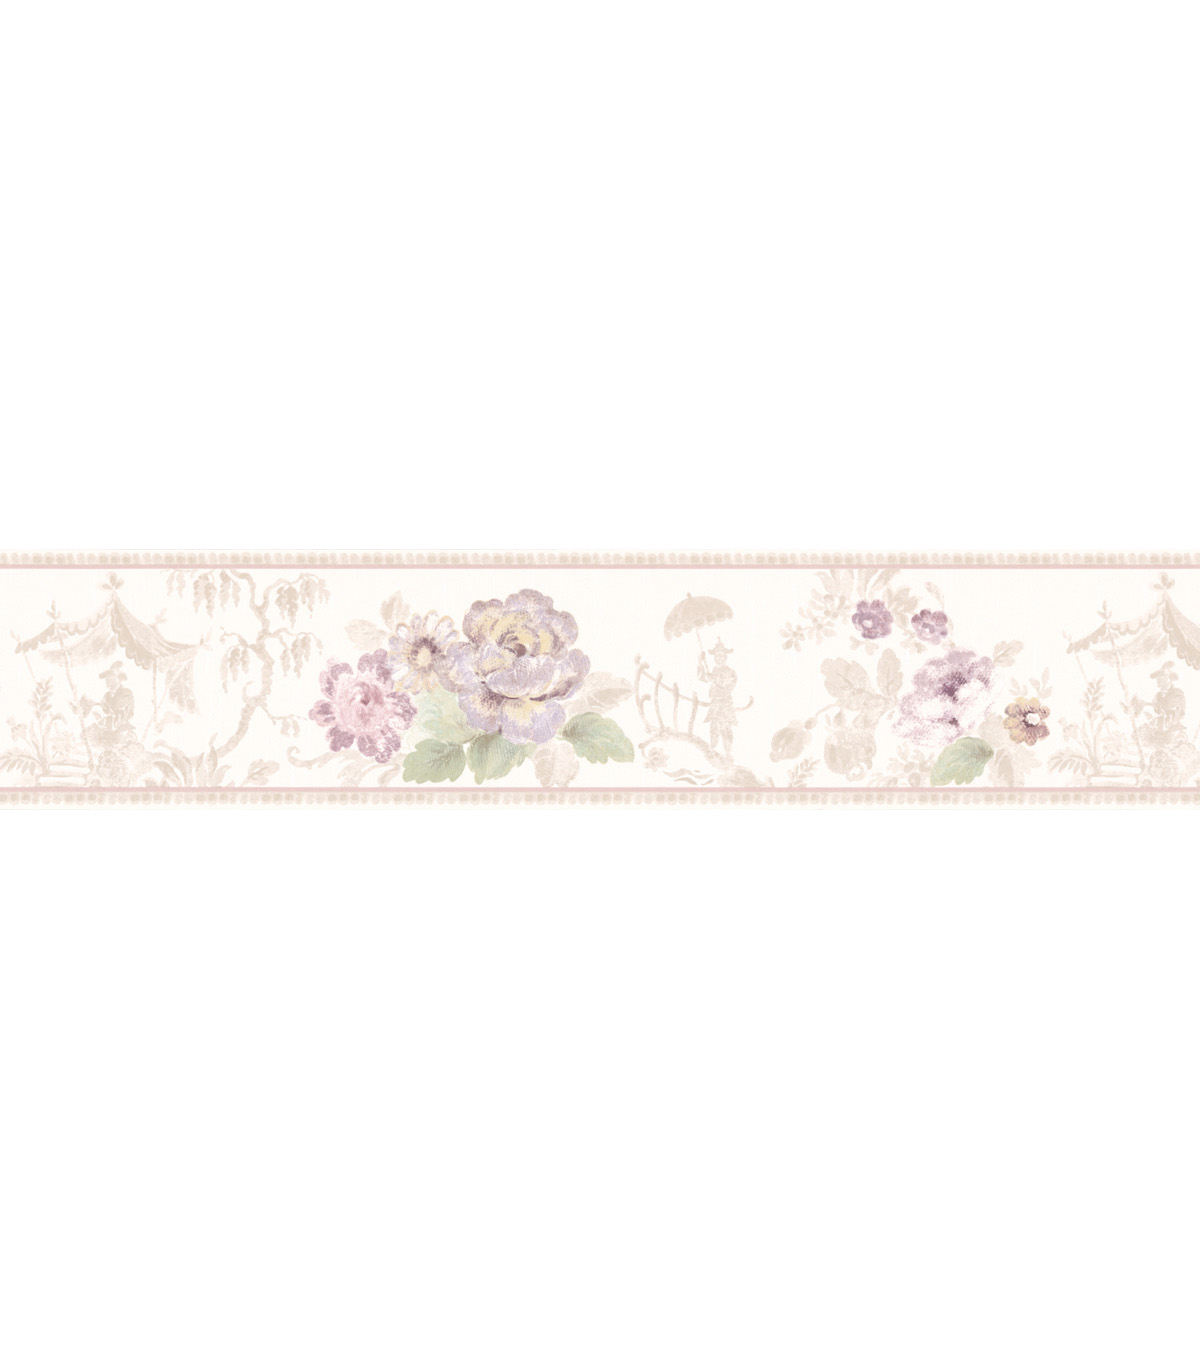 Toile Scenic Floral Wallpaper Border, Multicolor Sample